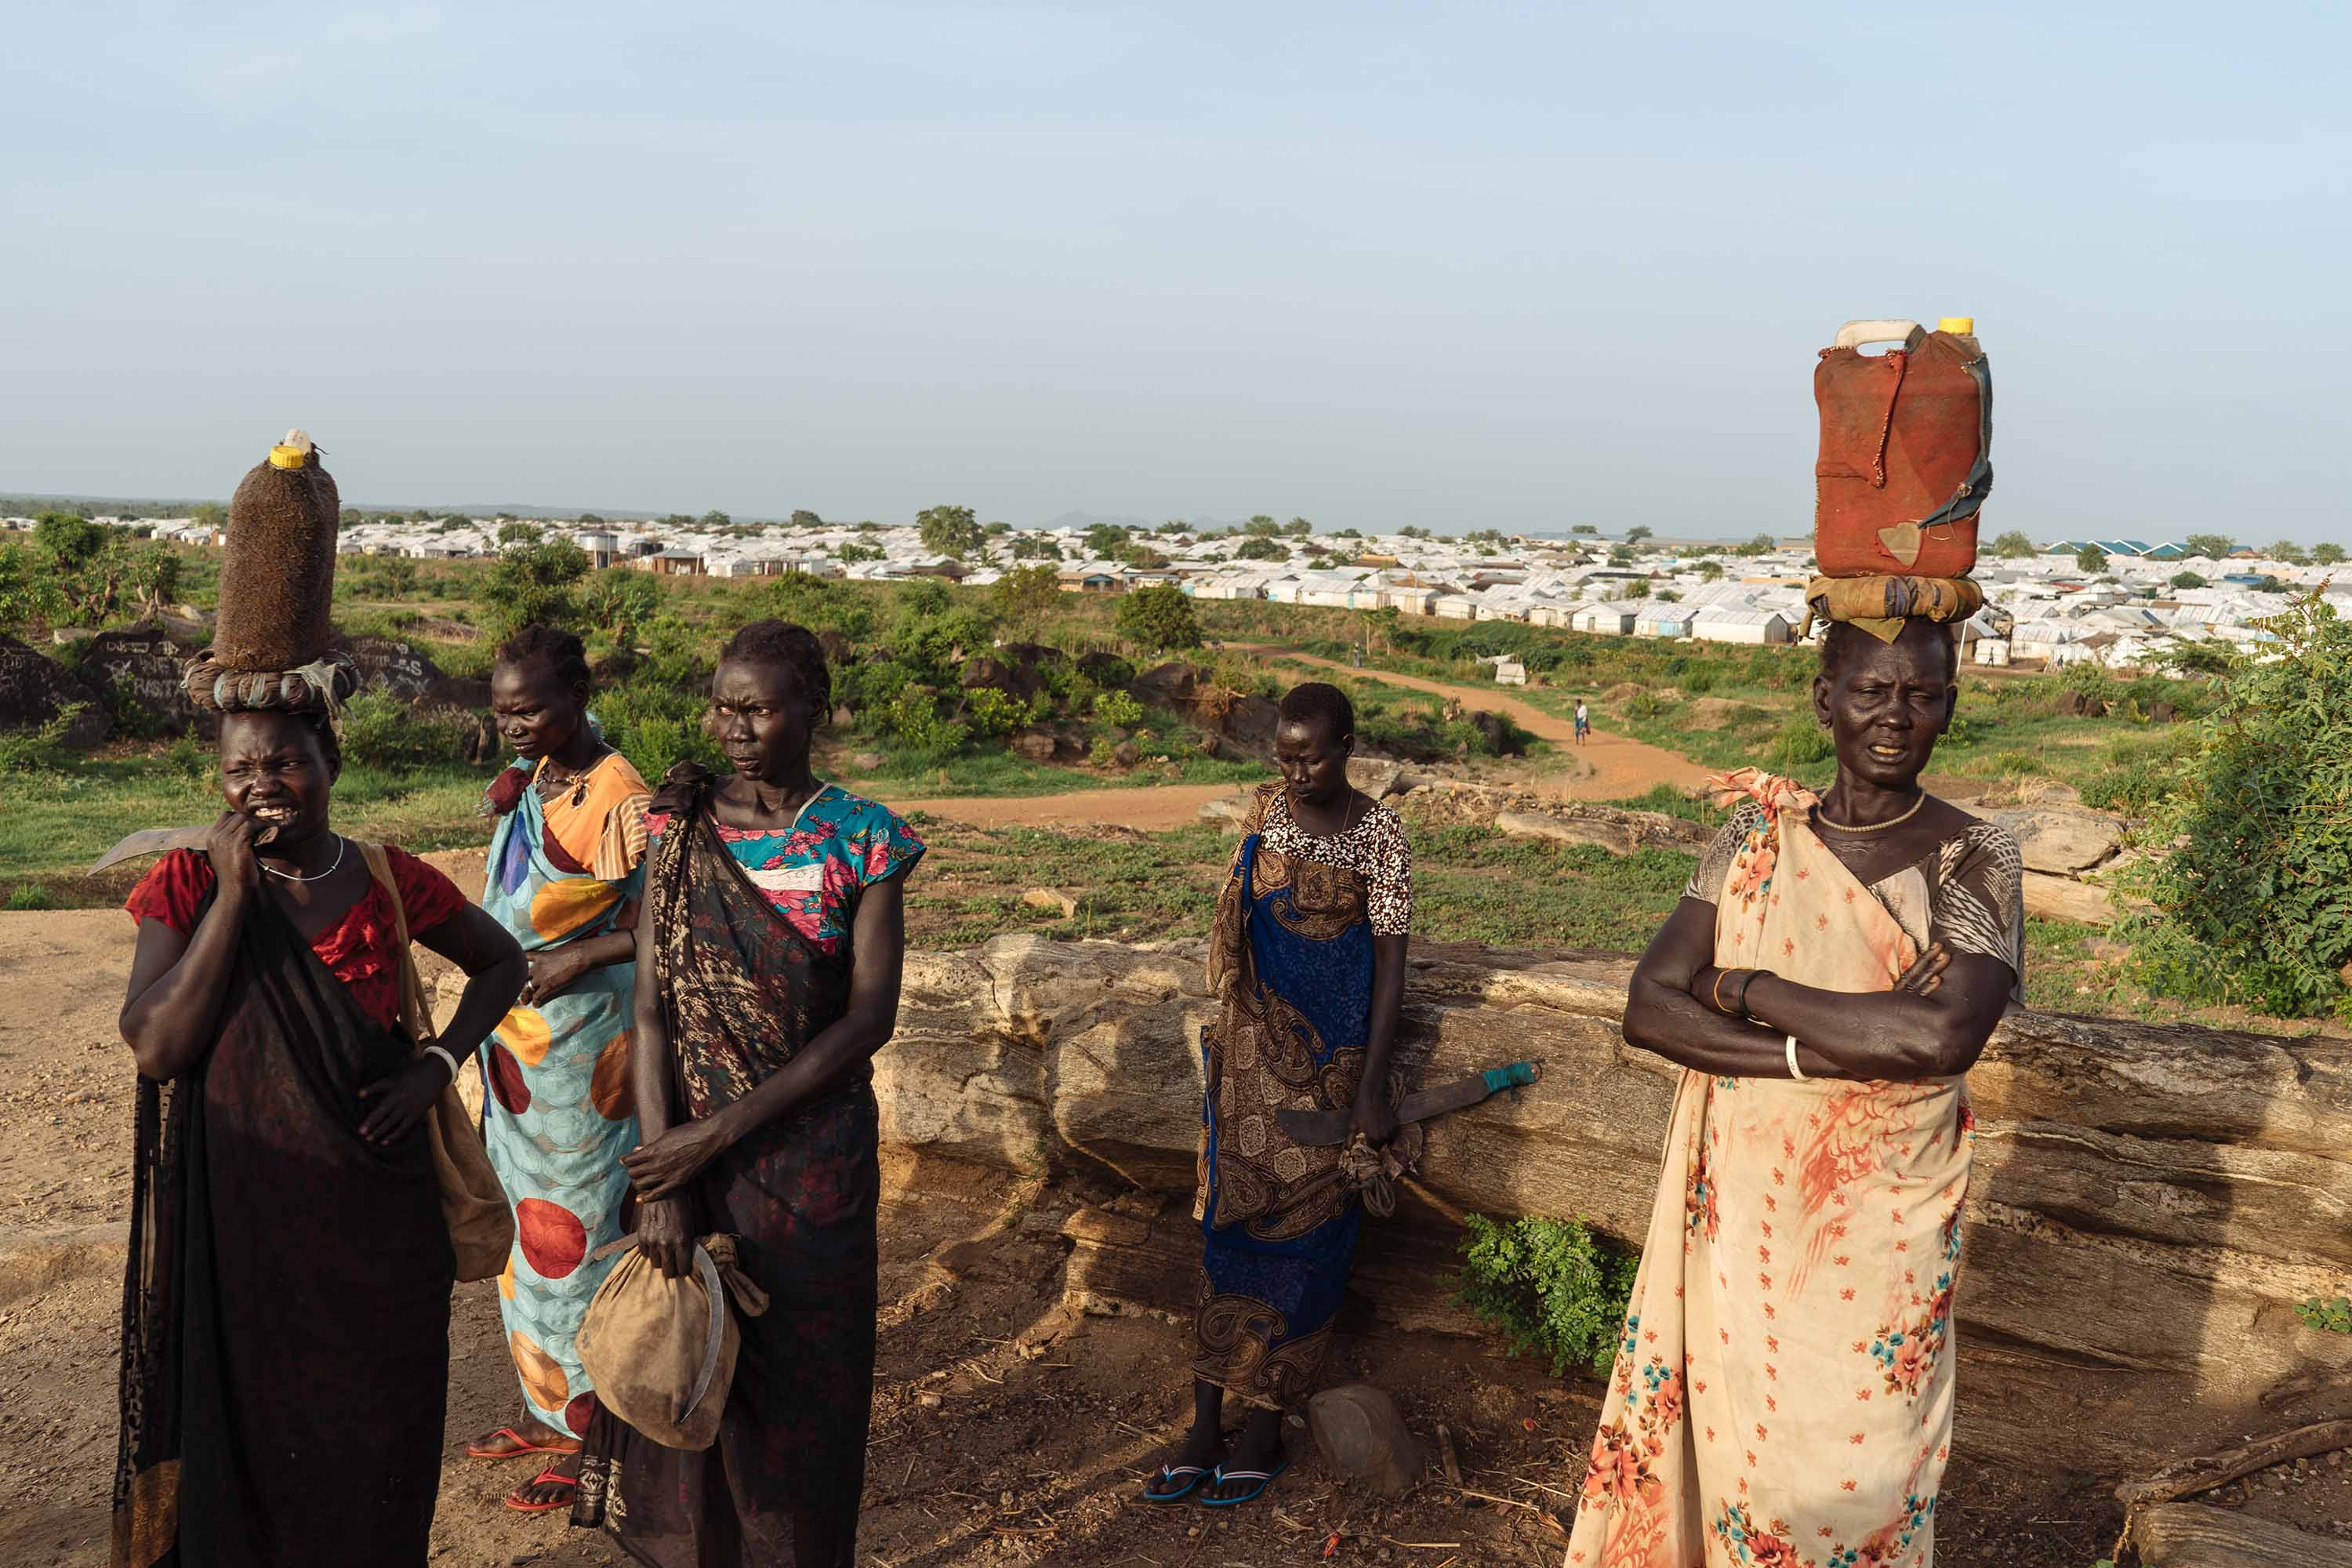 South Sudanese women wait for others to join on the way to the forest to get firewood.